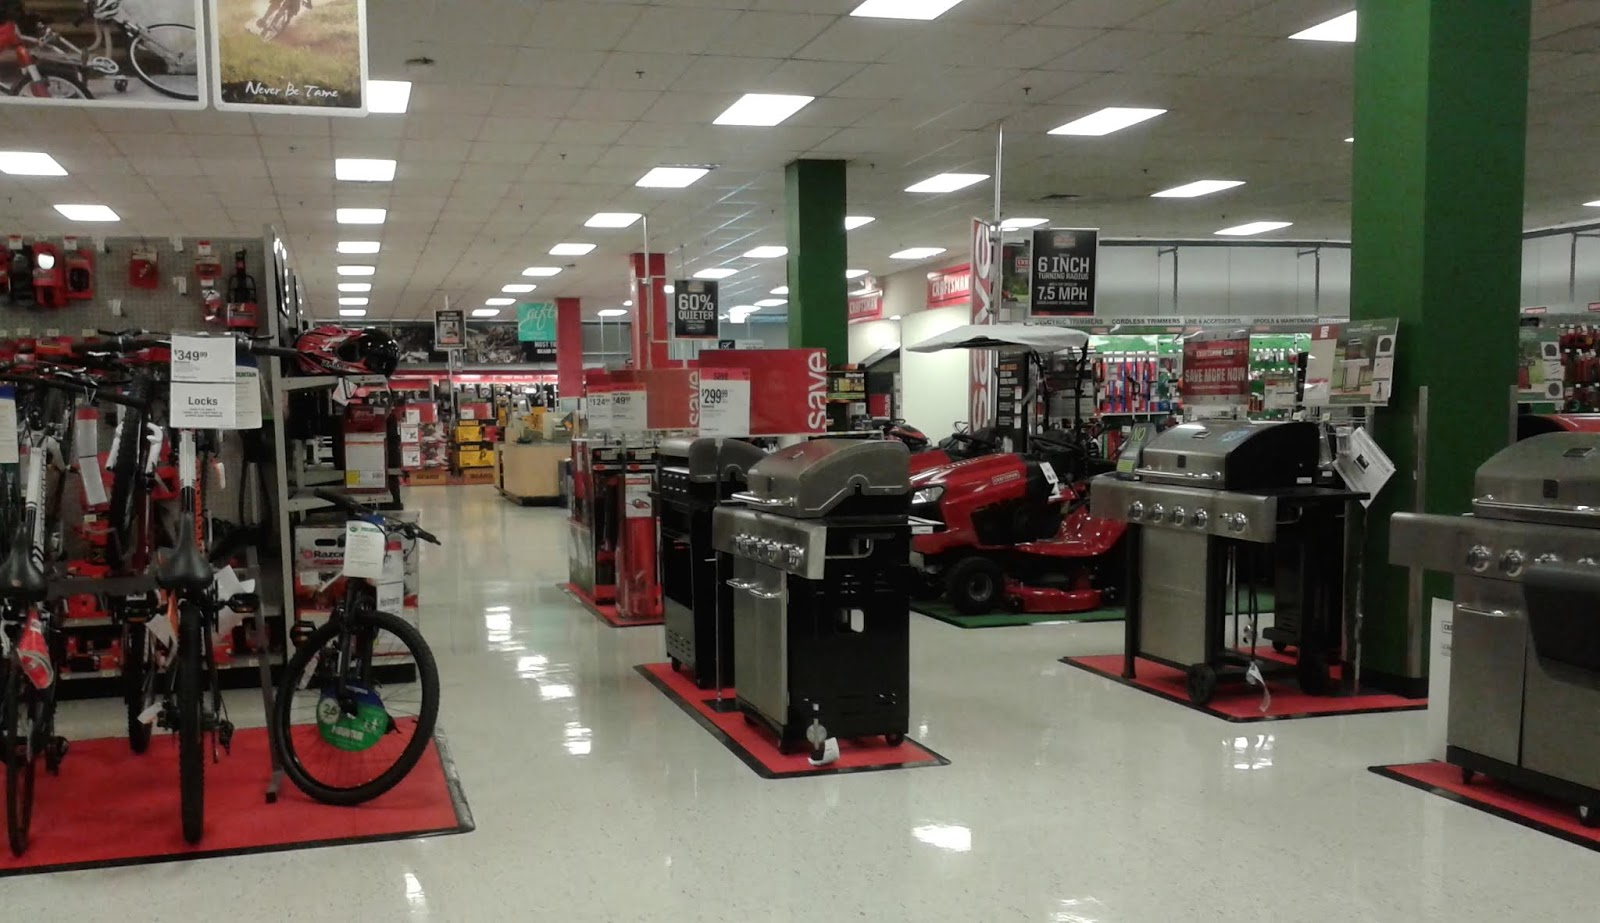 My Florida Retail Blog Sears 2245 Melbourne Fl Back In The Good Old Days